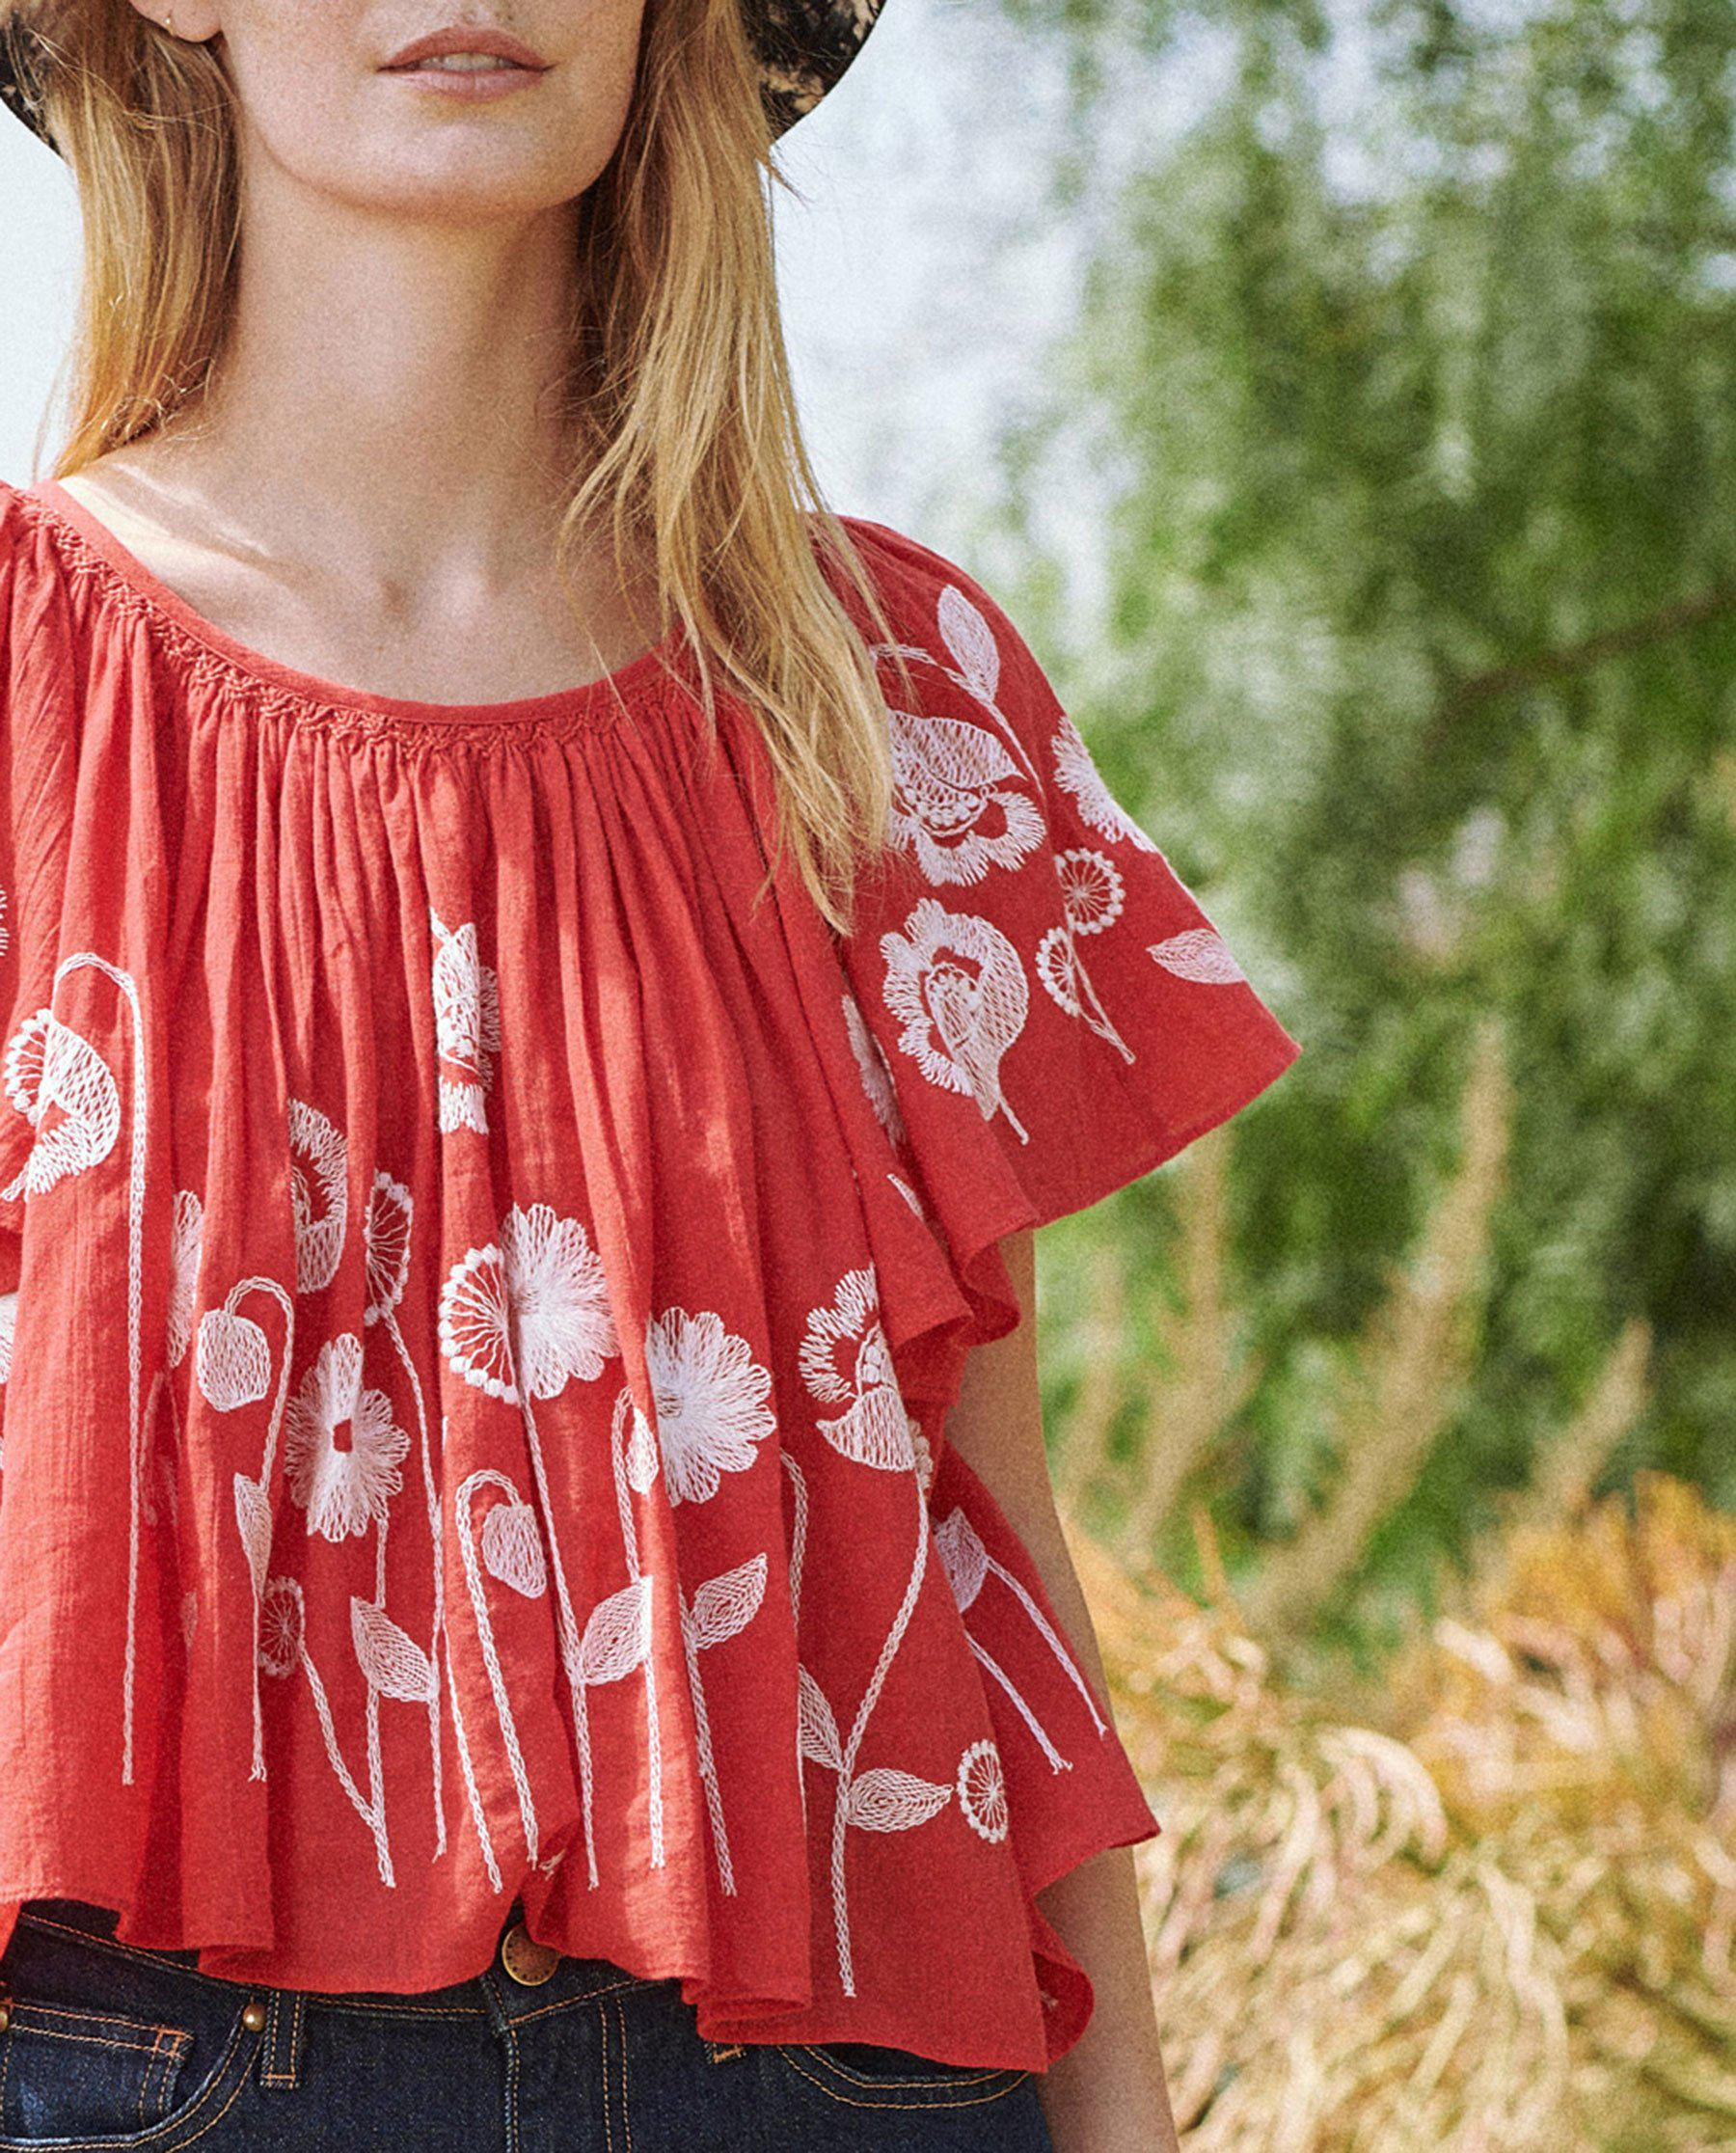 The Dale Top. -- Cherry Red with Trellis Floral Embroidery 3